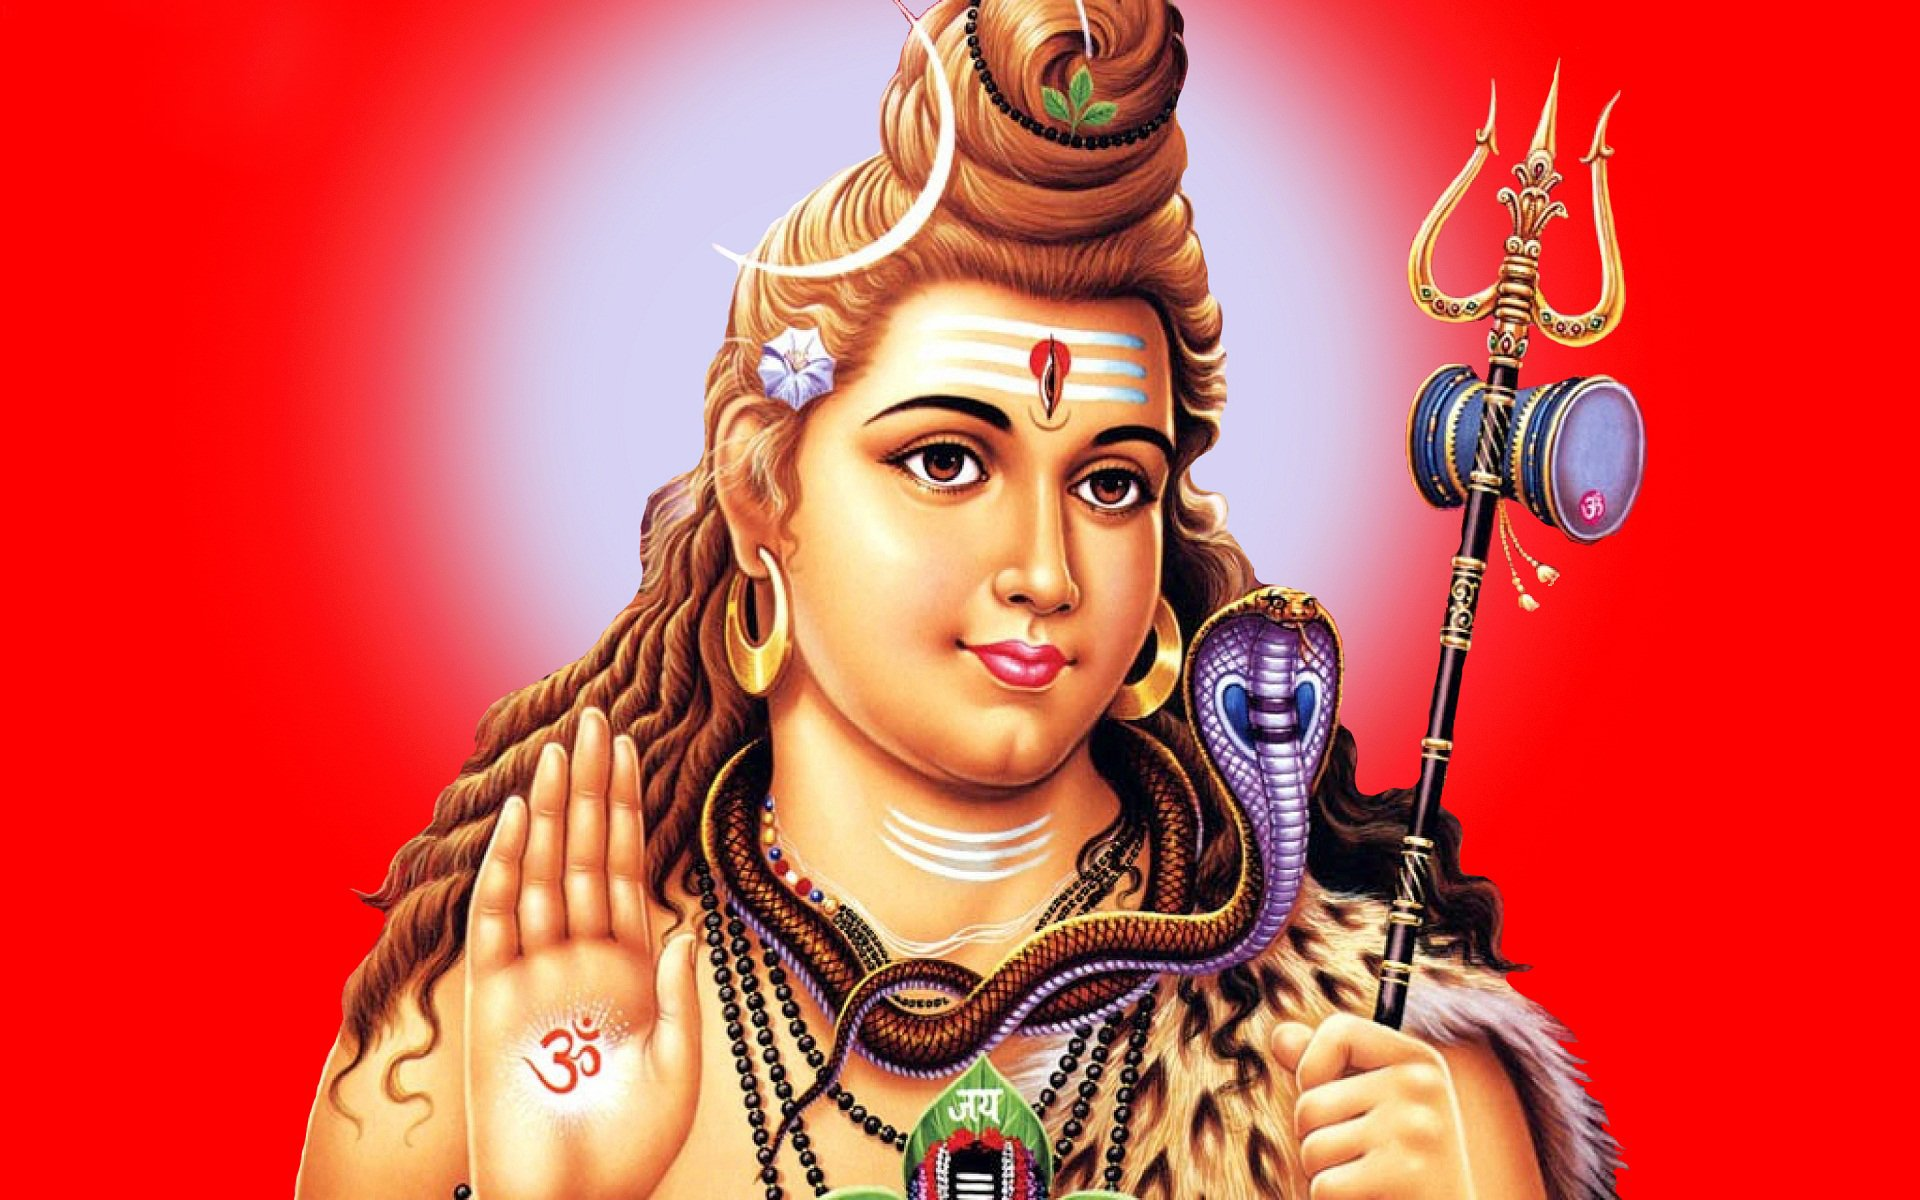 Home God Lord Lord Shiva Lord Shiva 1080p HD Wallpapers 1920x1200